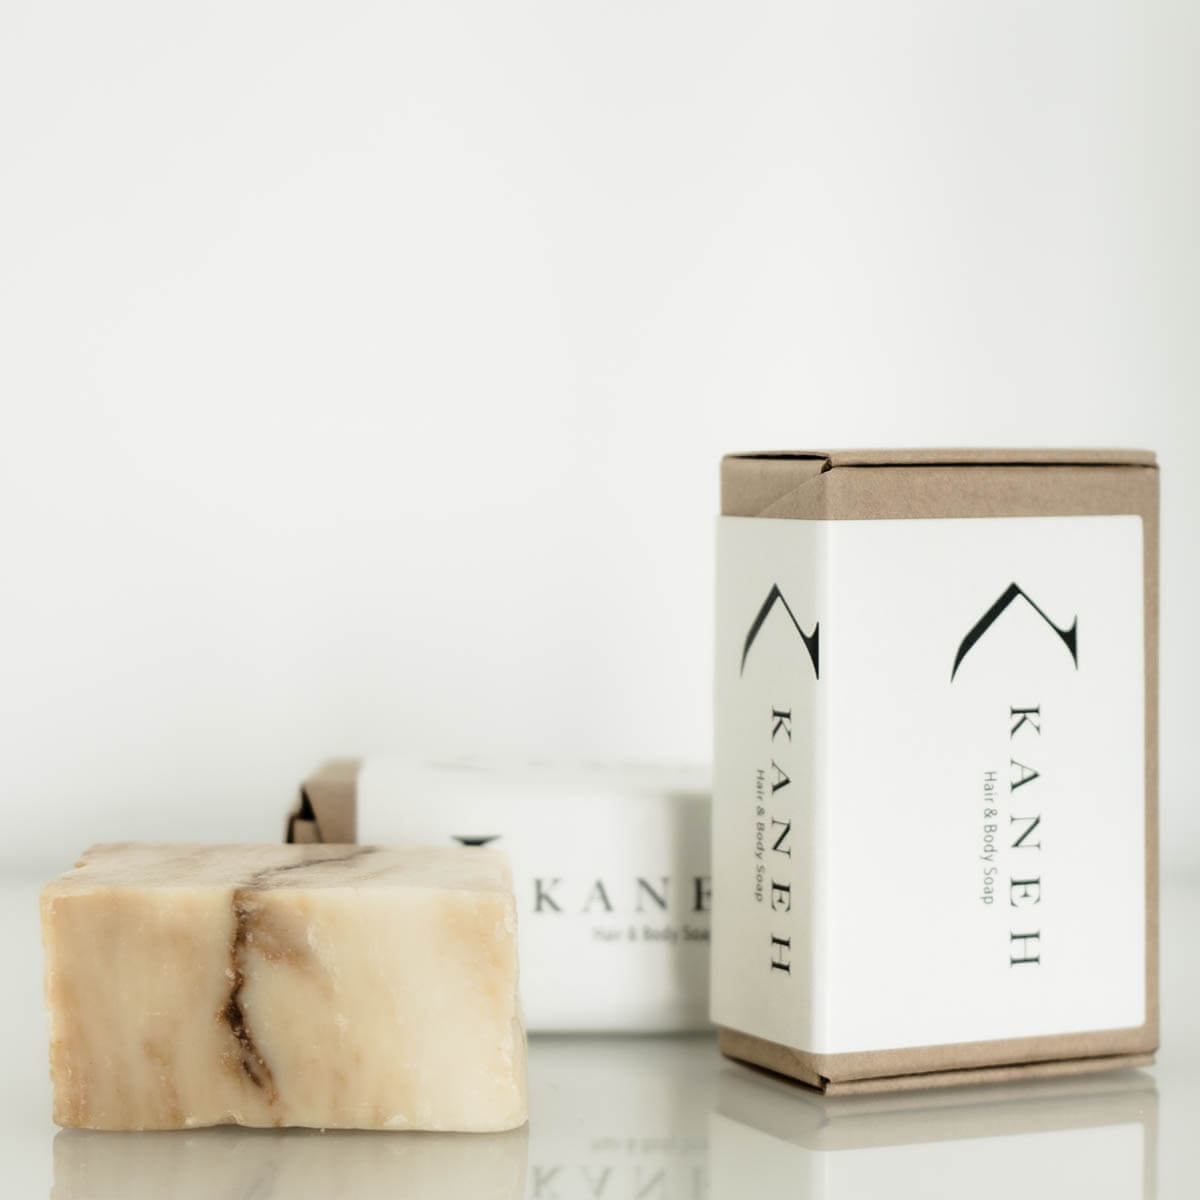 KANEH CBD HAIR & BODY SOAP